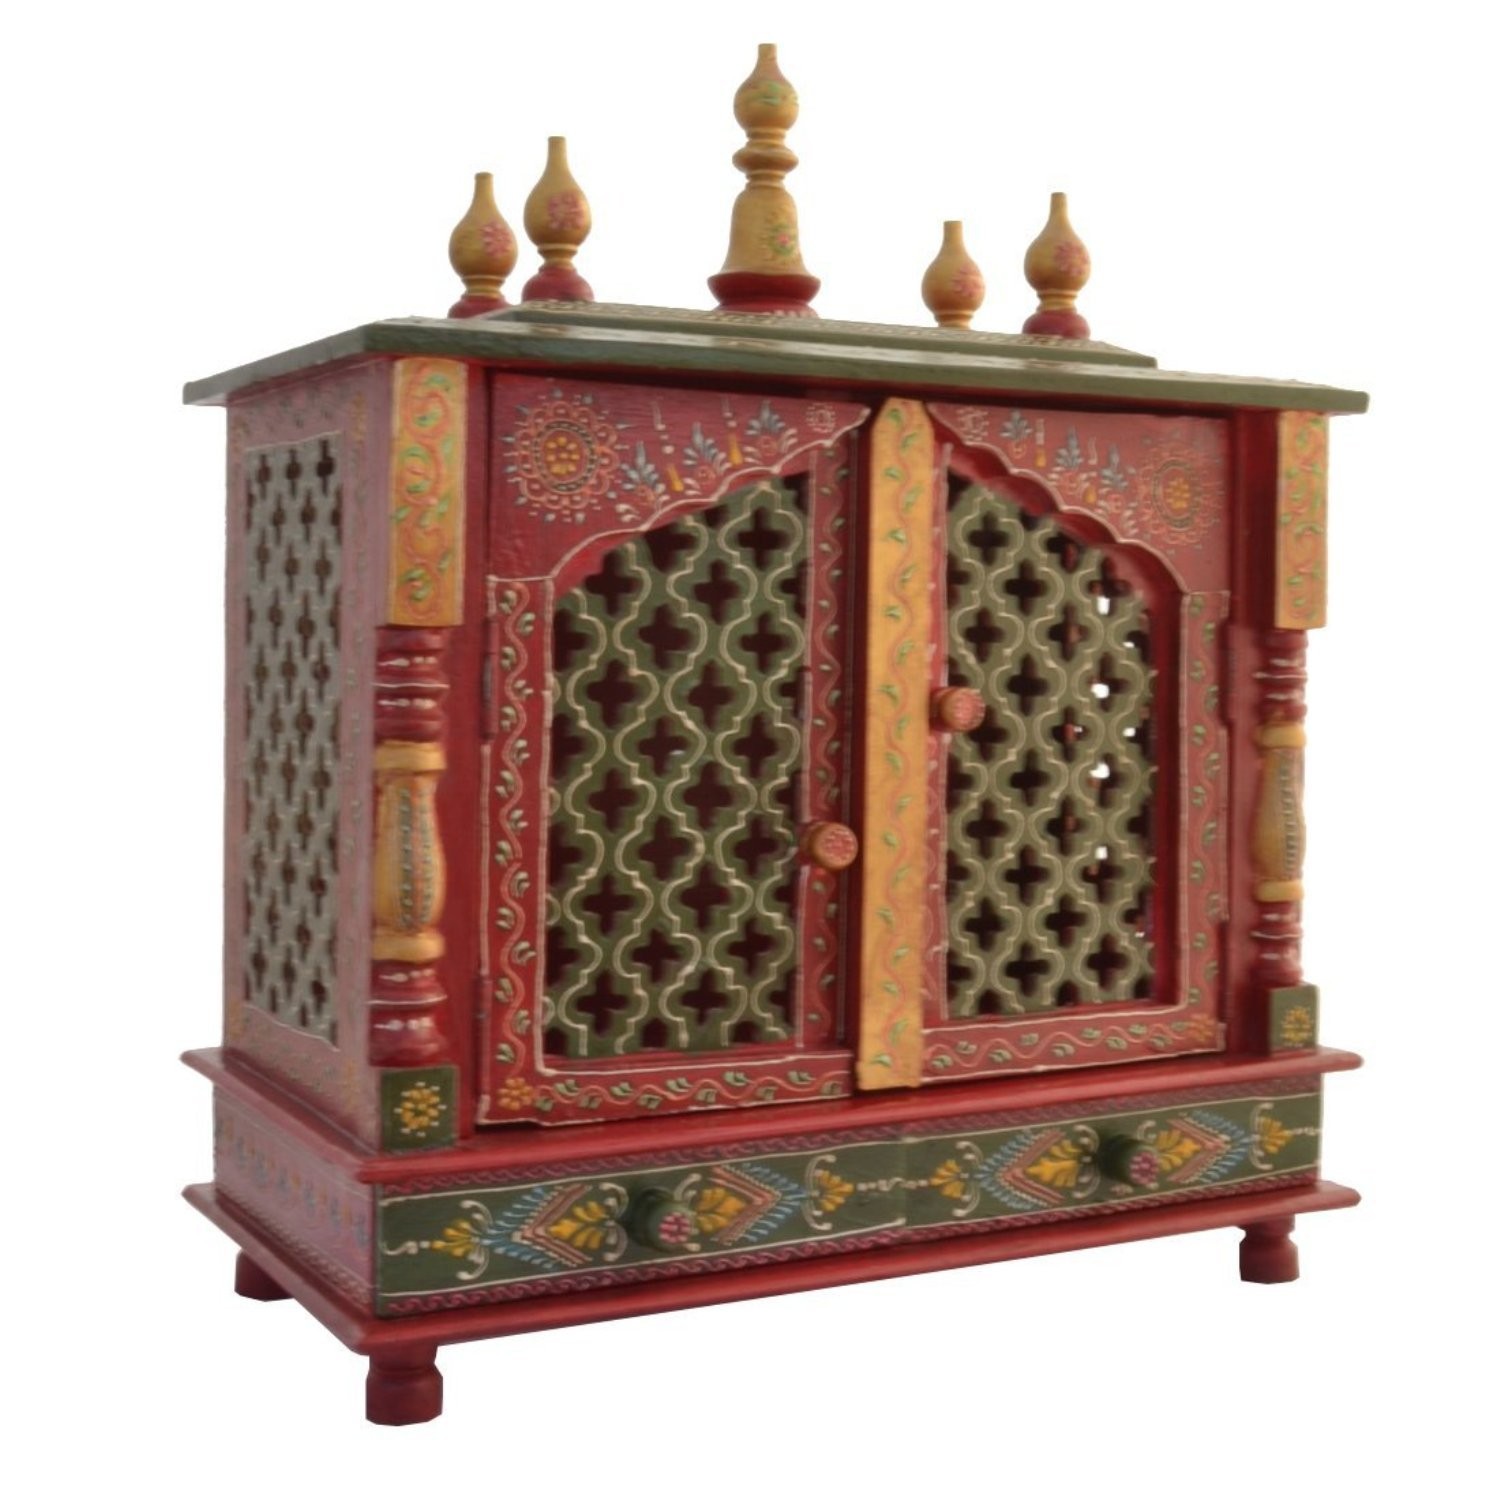 Pooja Room Decor Buy Pooja Room Decor Online at Best Prices in